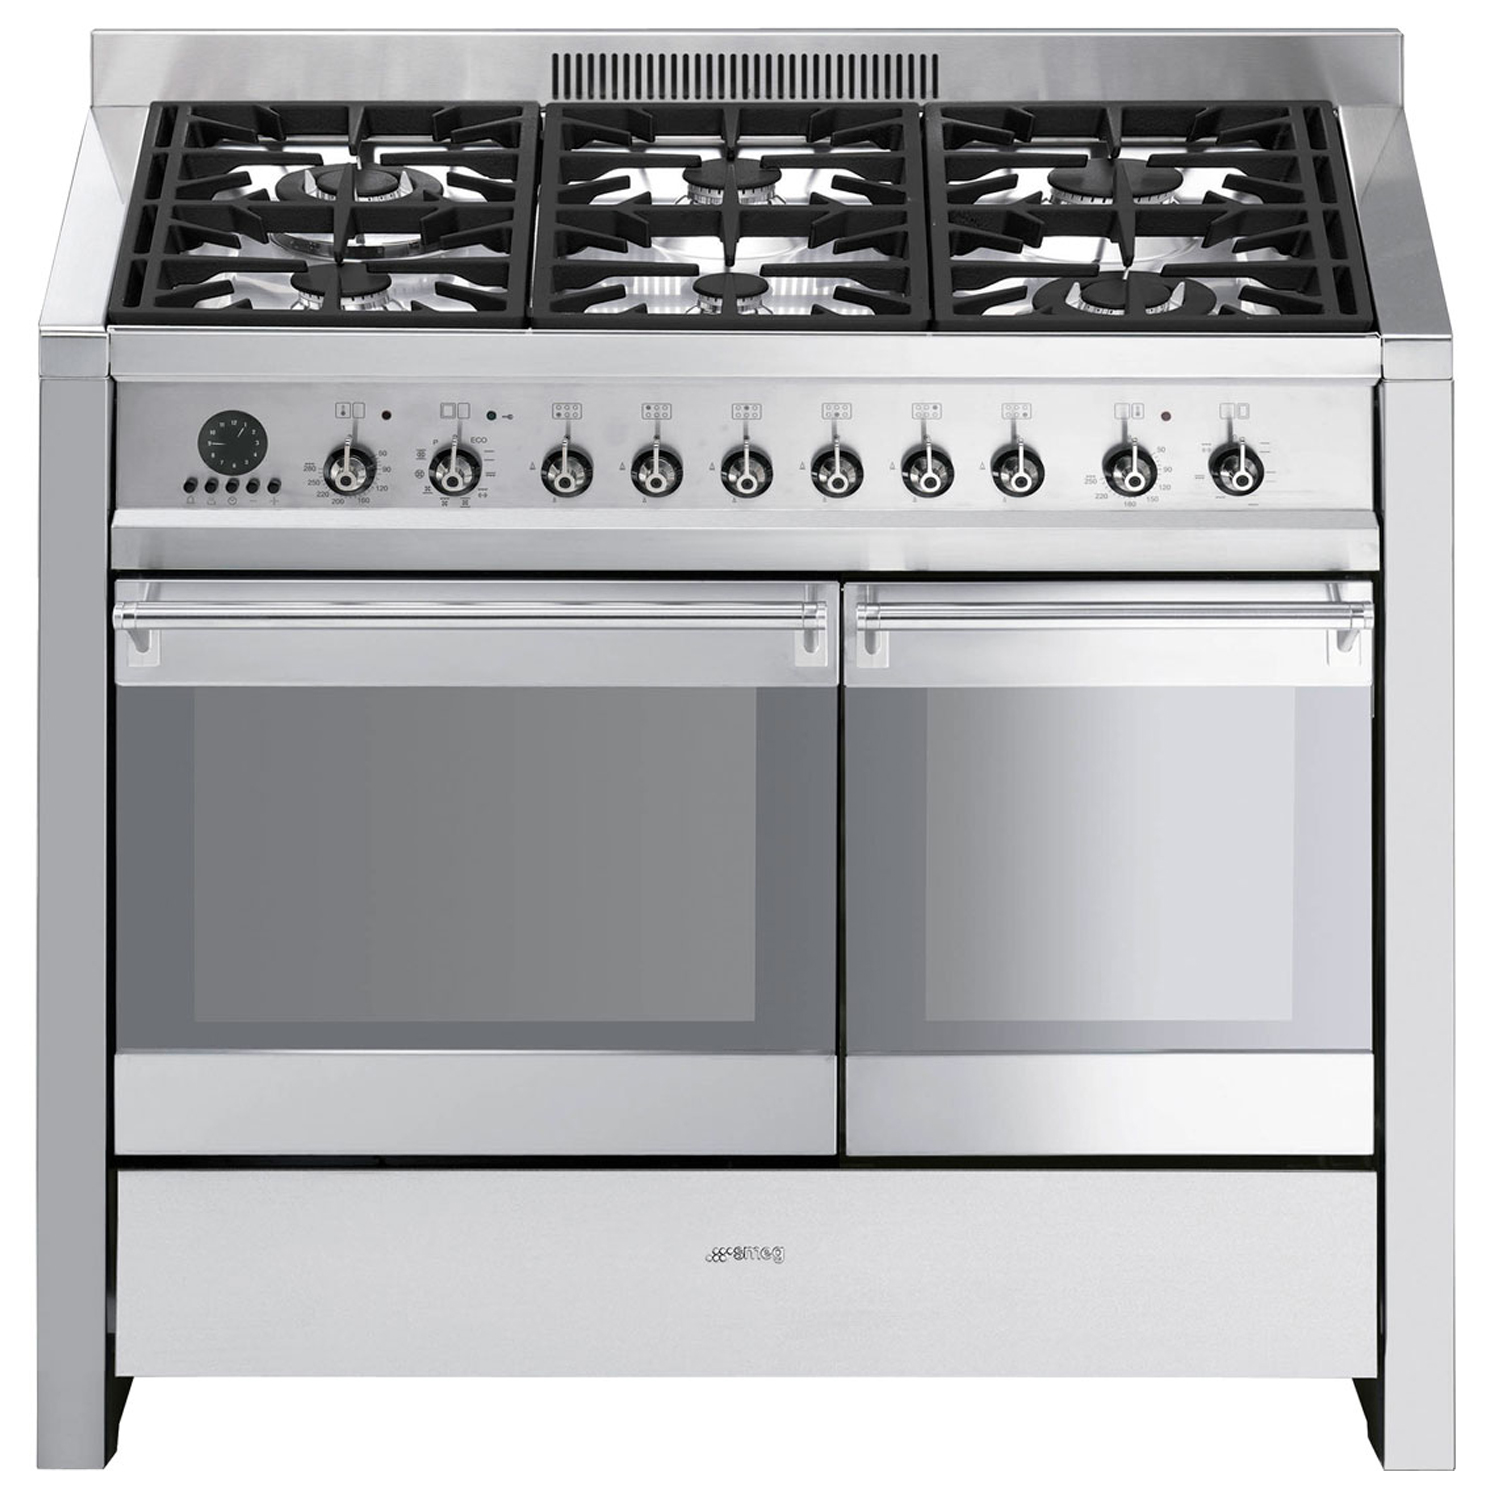 Smeg A2py-8 Cooker 100cm, Stainless Steel